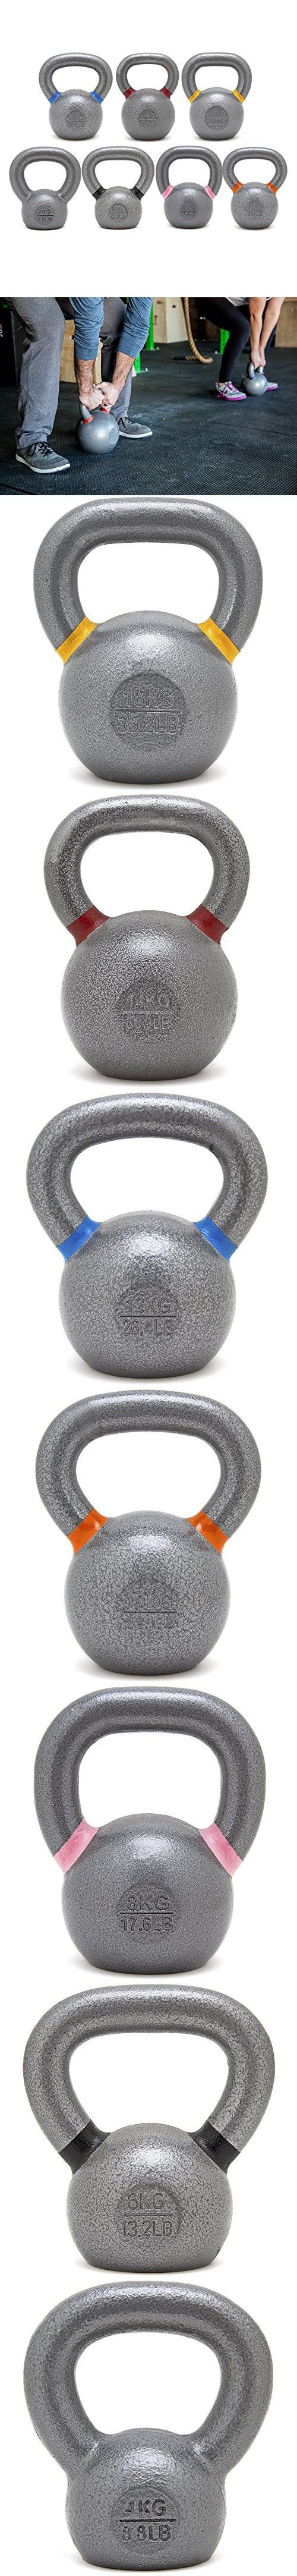 Kettlebell Set 4/6/8/10/12/14/16 Kg New Onefitwonder Solid Cast Iron Kettlebell Weight for Crossfit Training Strength Training Gym Exercise Superior Grip Kettlebell Set